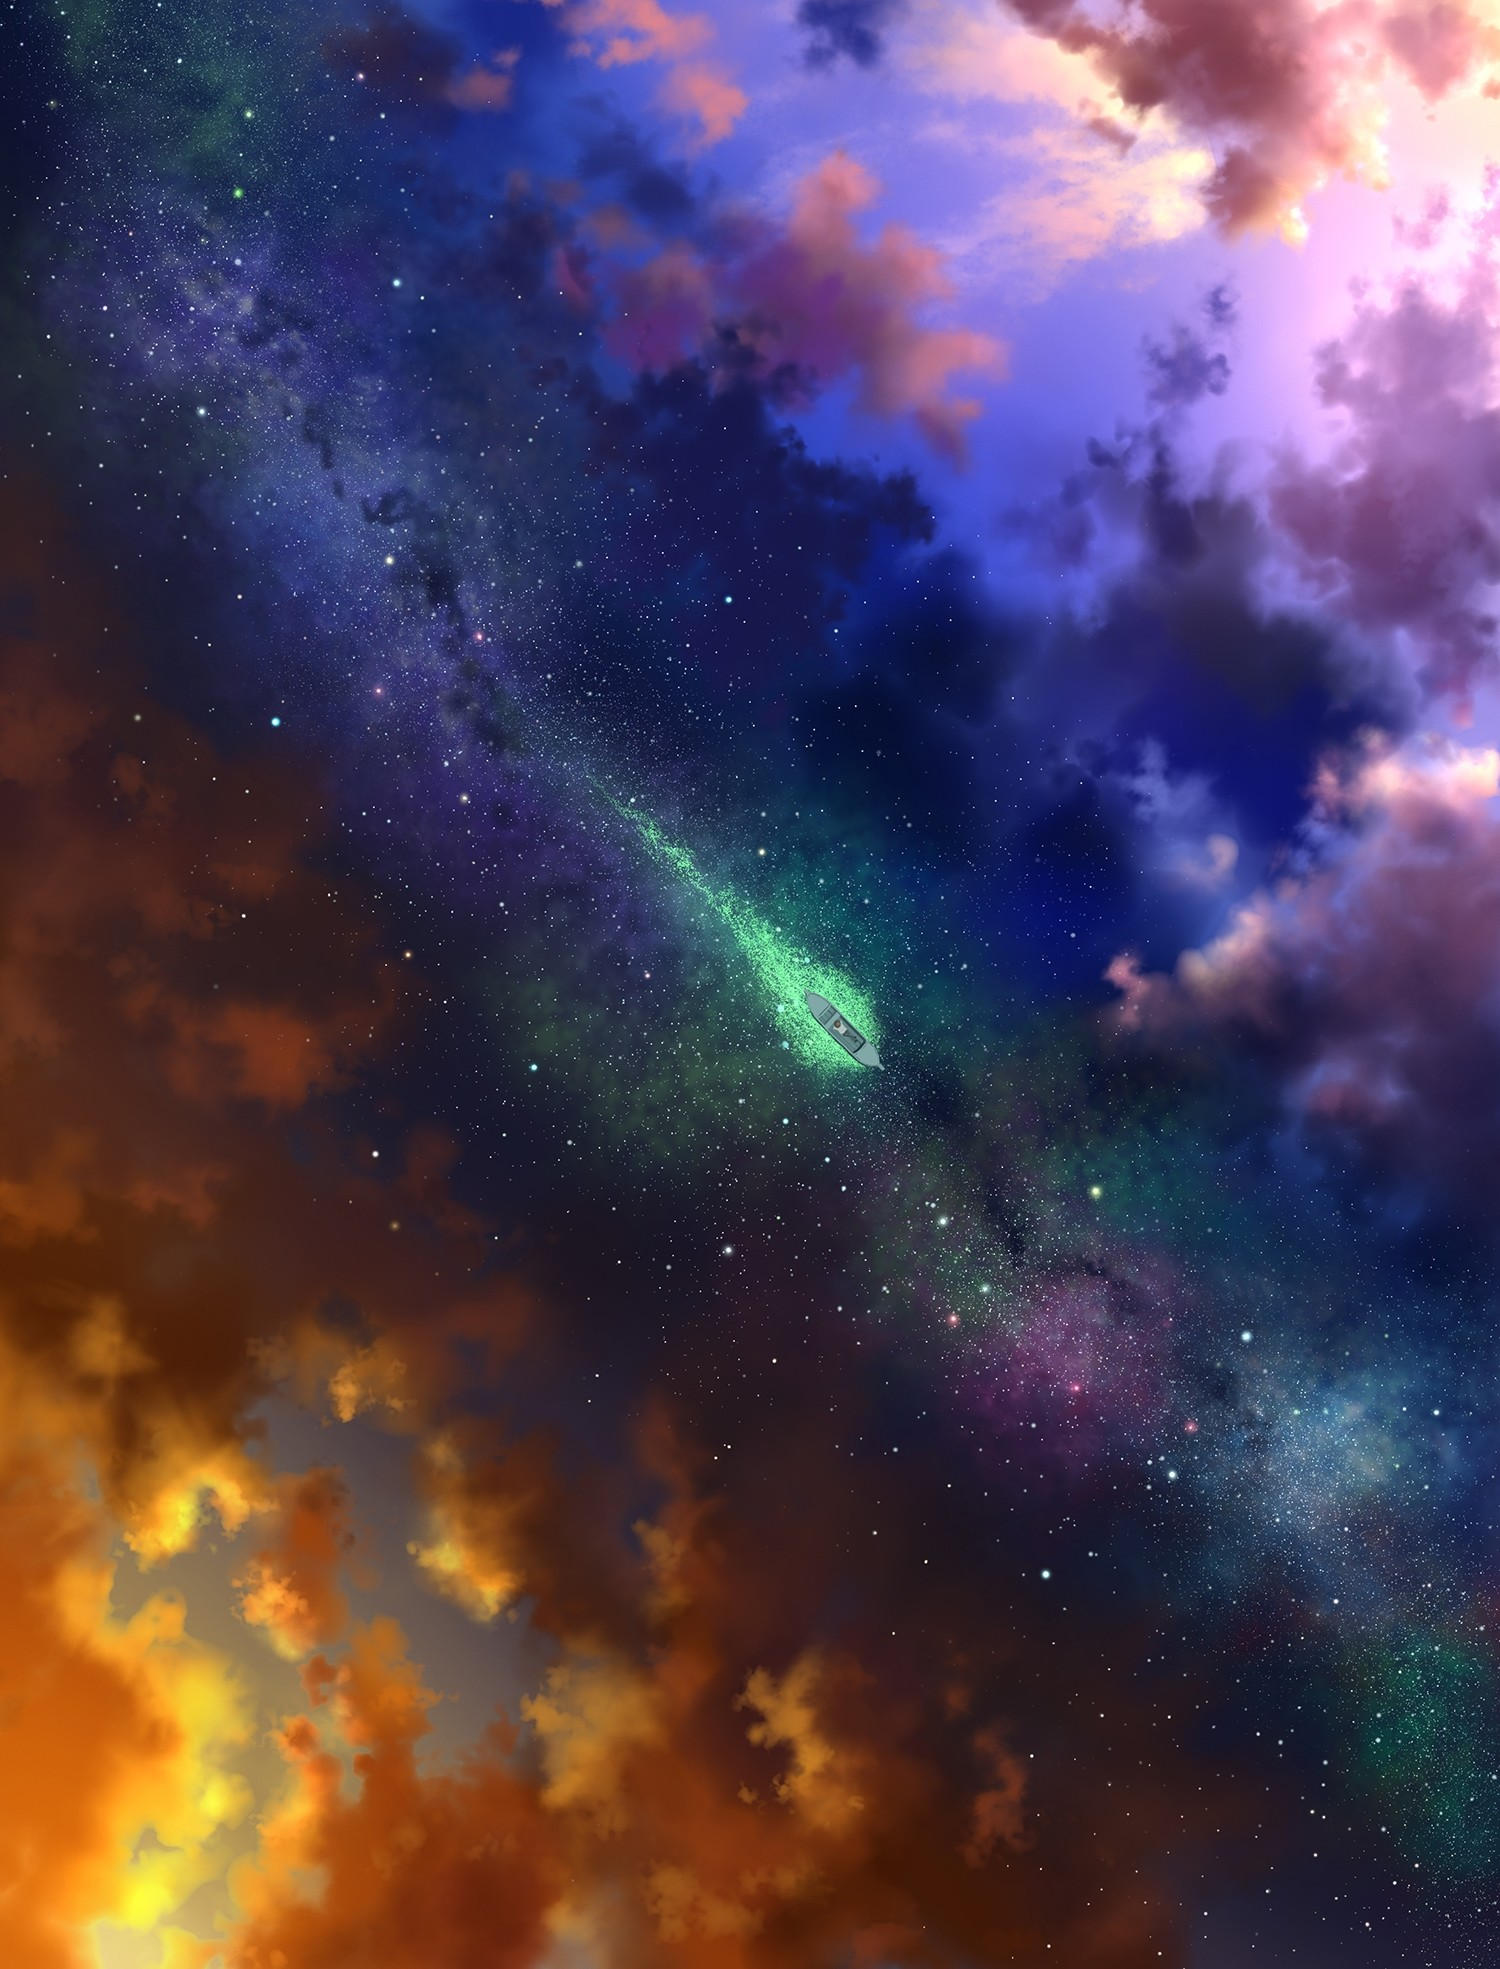 Res: 1500x1969, Boat, Stars And Clouds, Two Dimension, Fantasy World